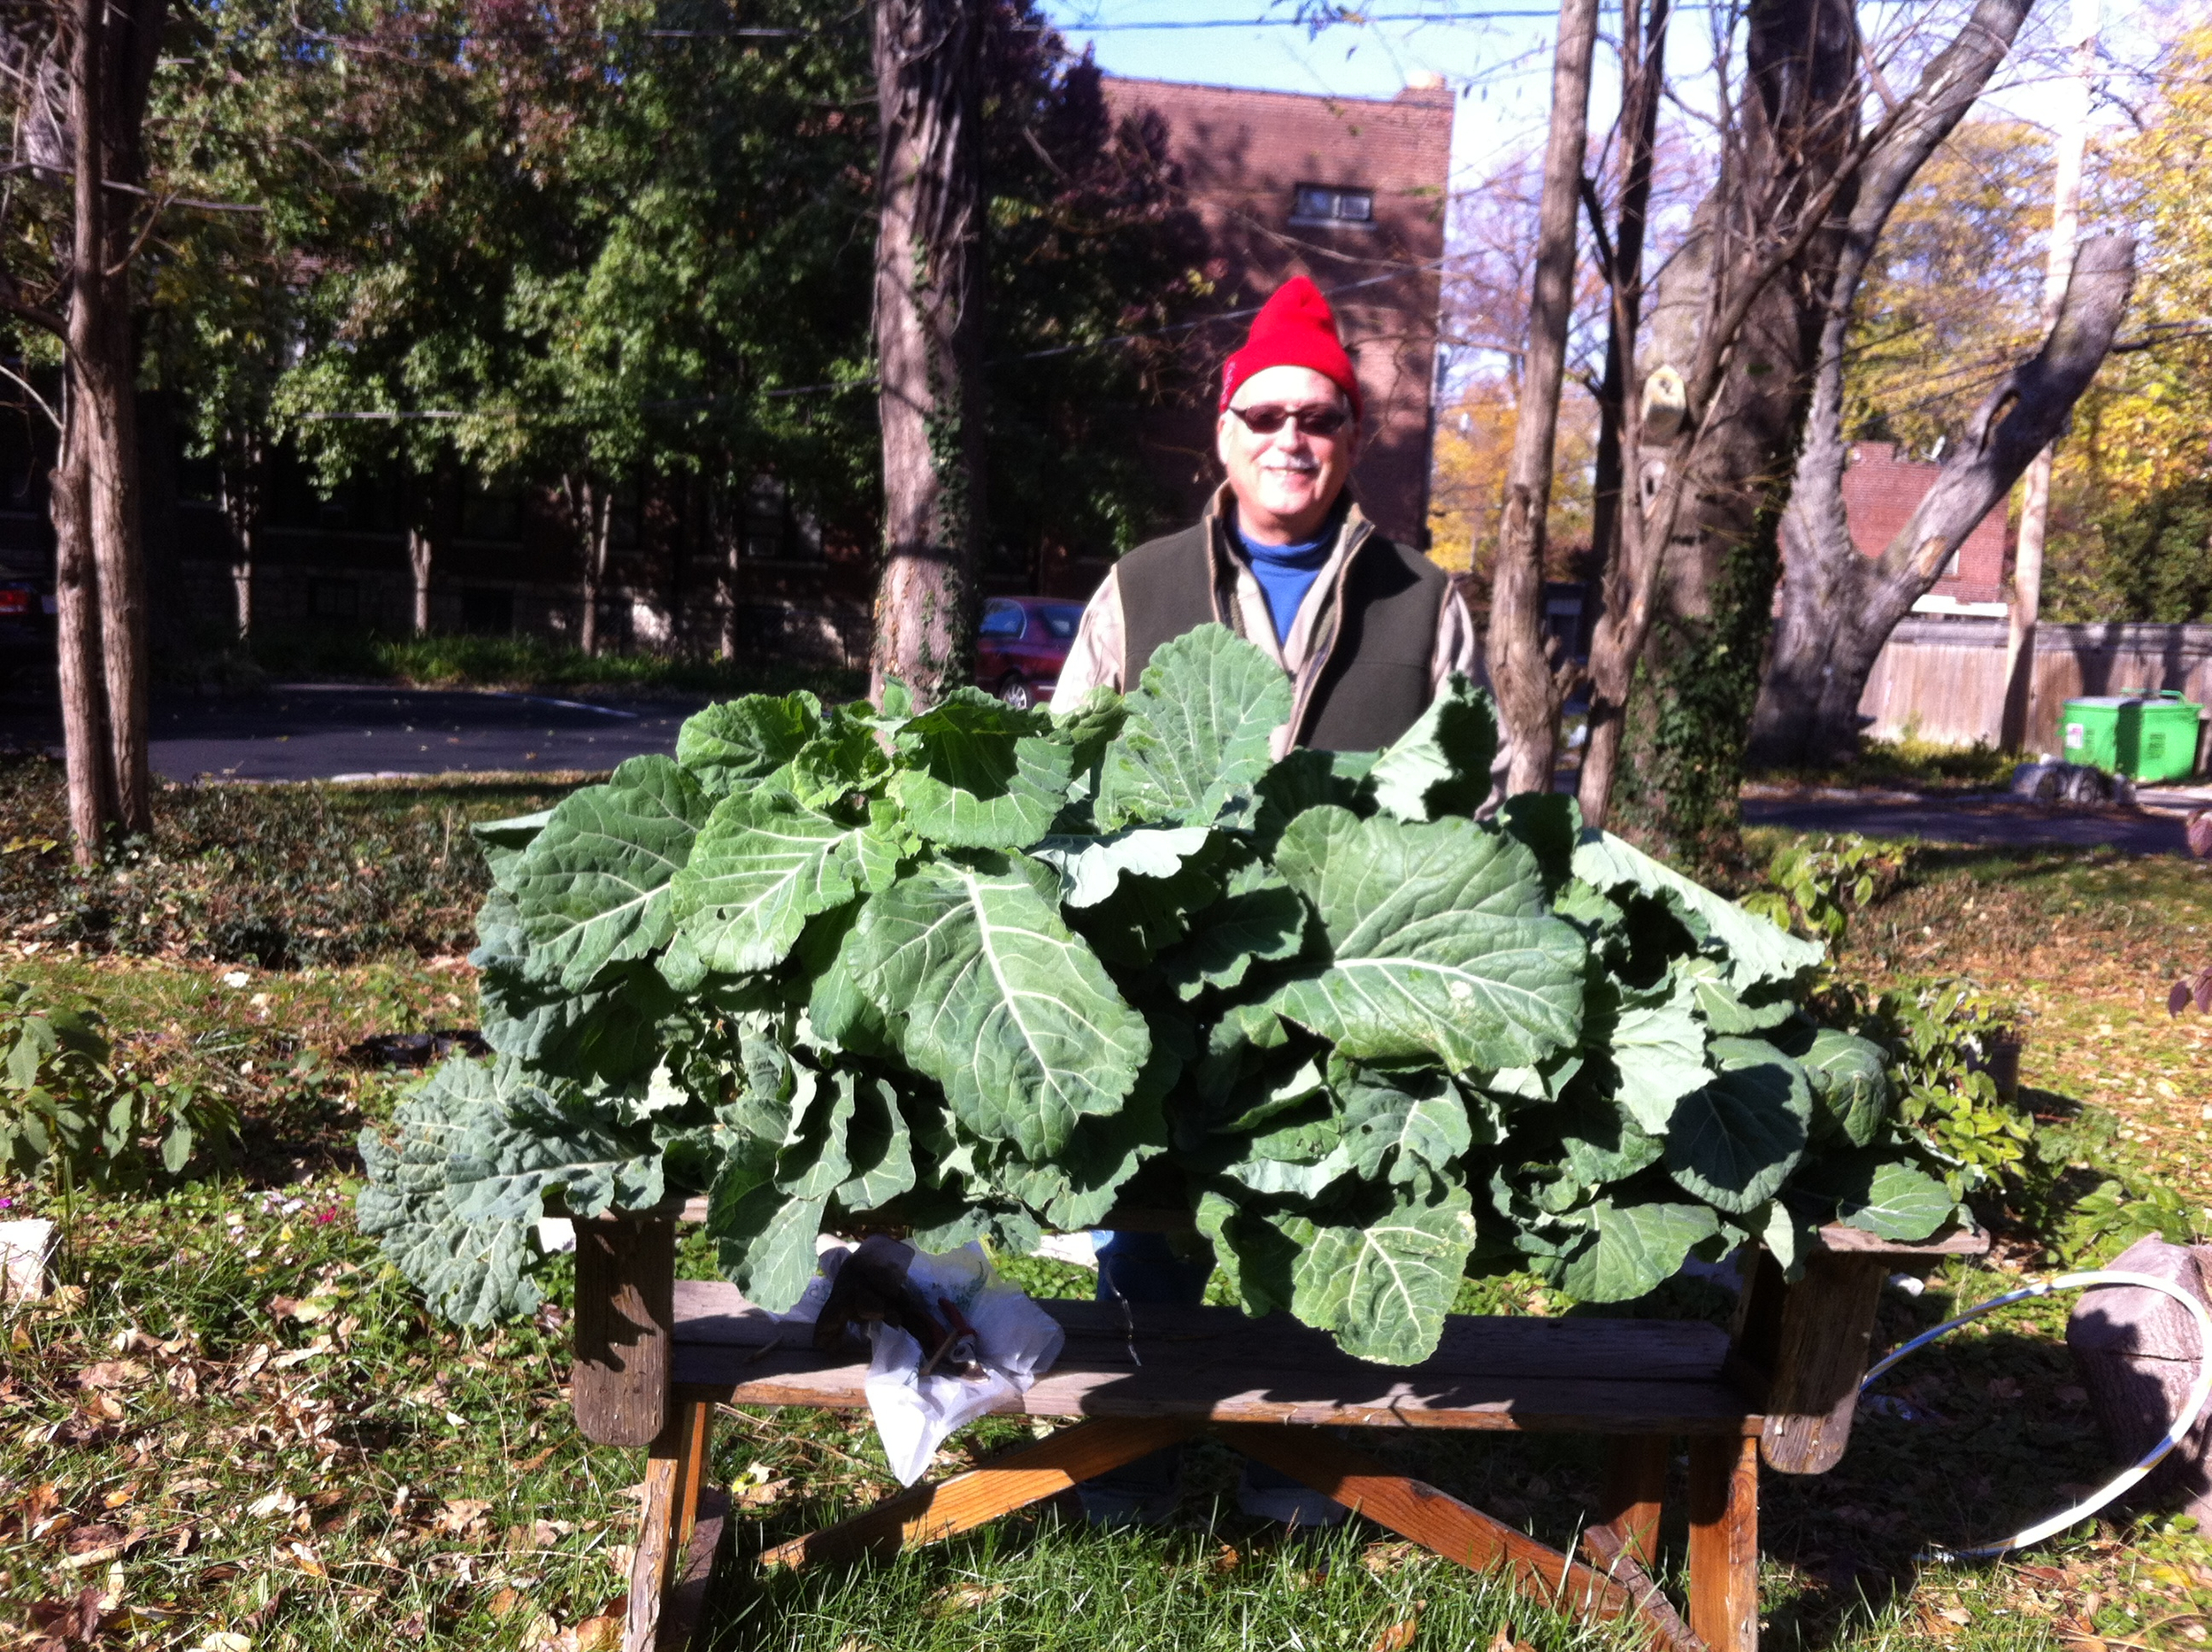 Farm Manager Arthur with a particularly large harvest of greens!